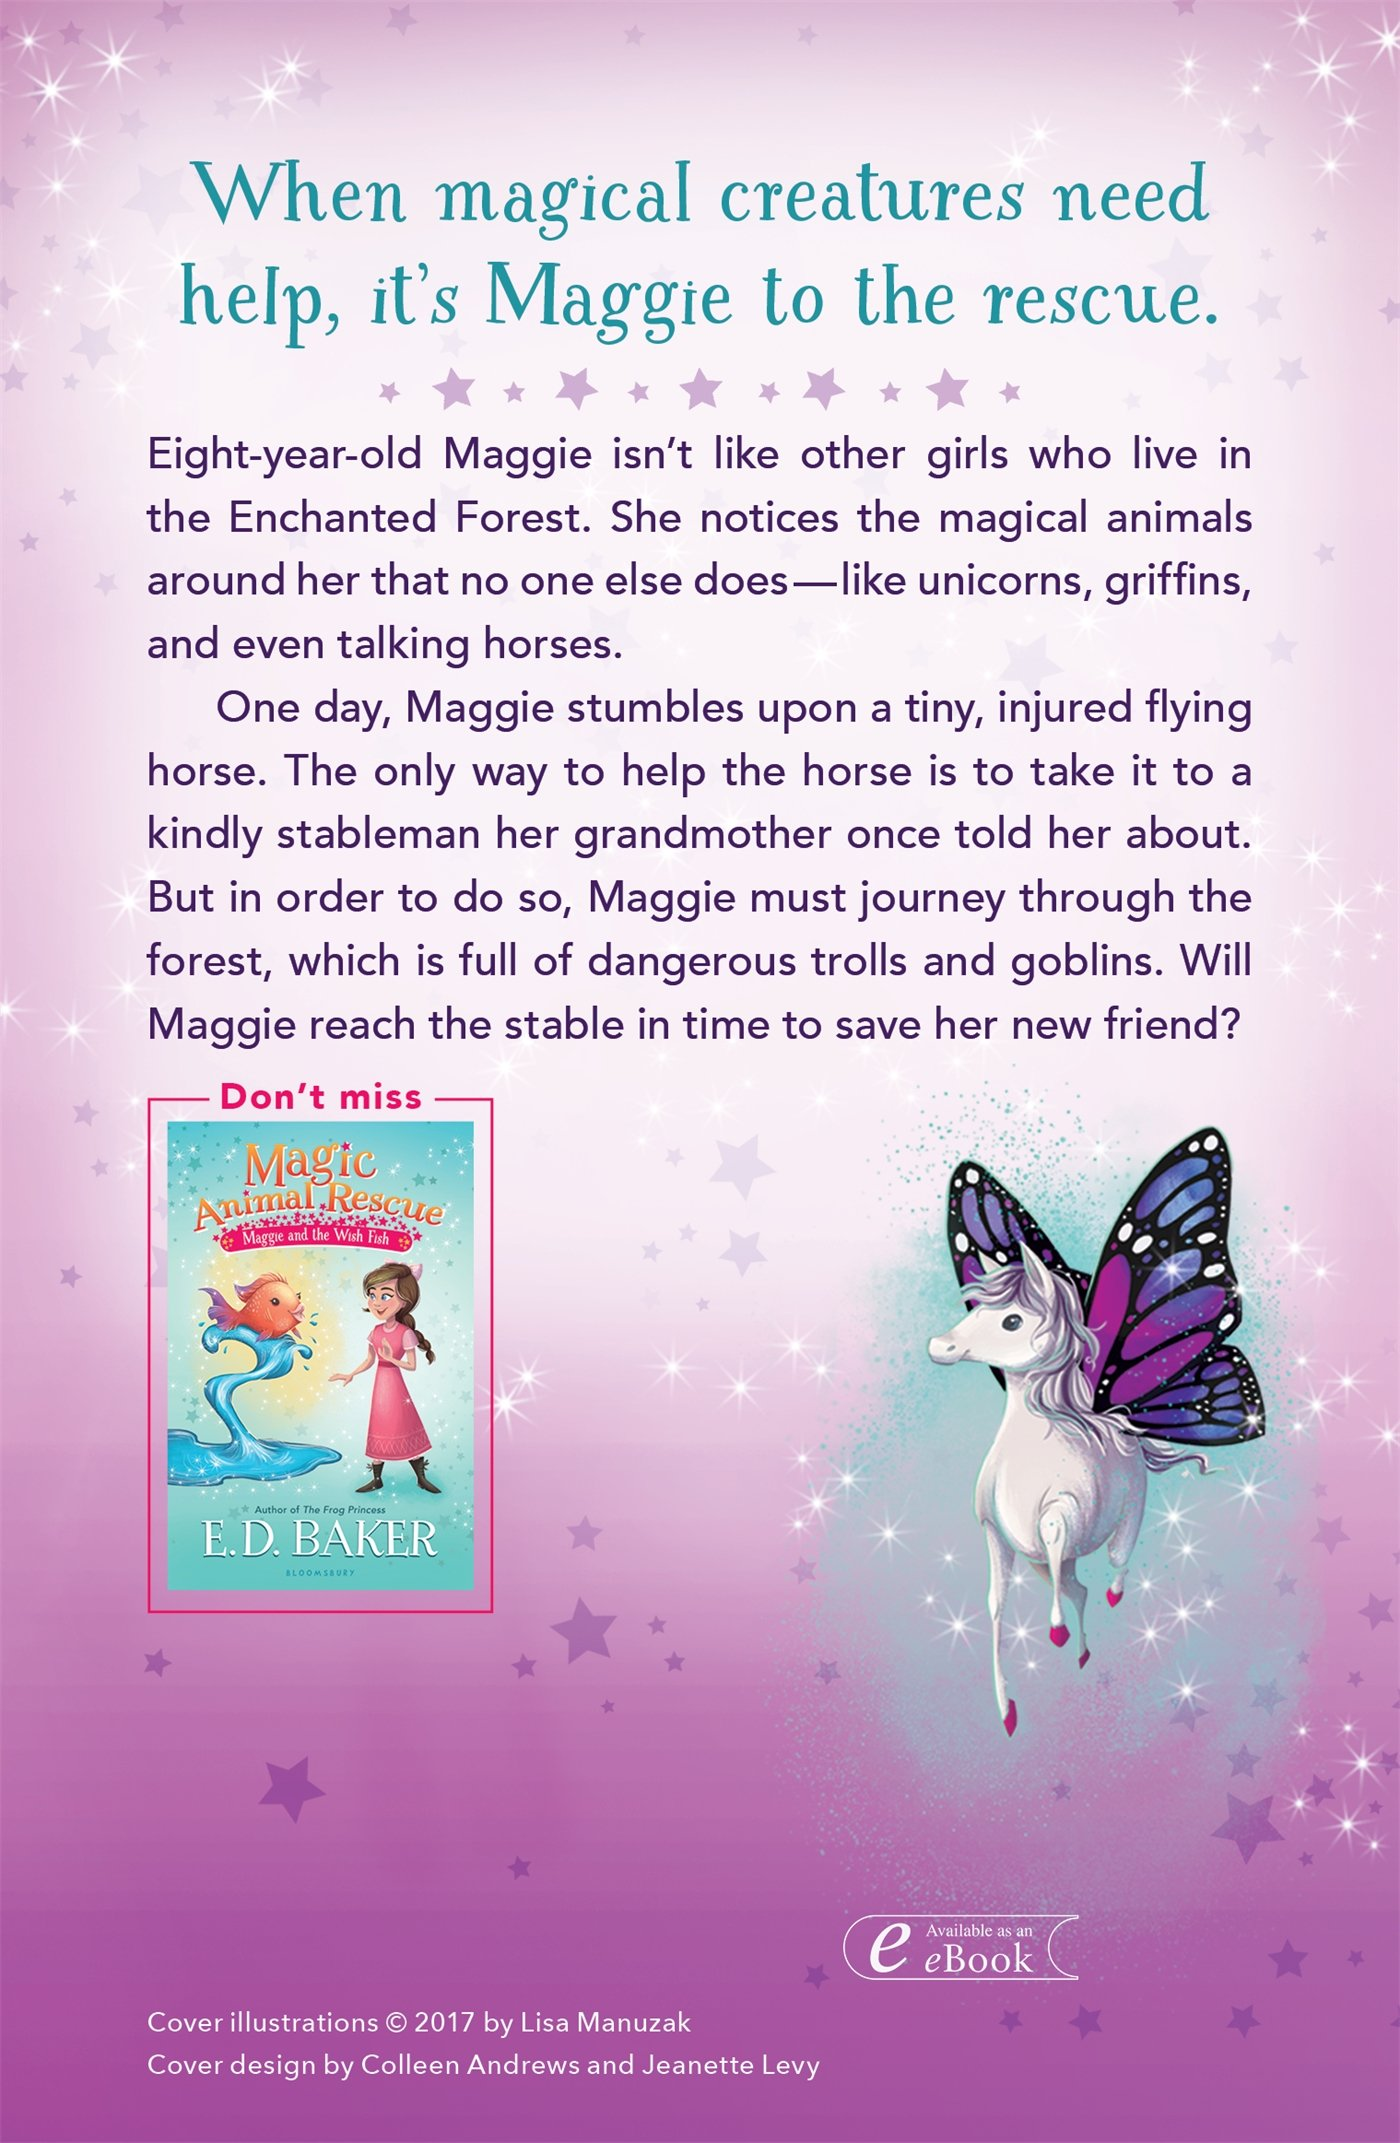 Amazon magic animal rescue 1 maggie and the flying horse amazon magic animal rescue 1 maggie and the flying horse 9781681191416 ed baker lisa manuzak books fandeluxe Ebook collections